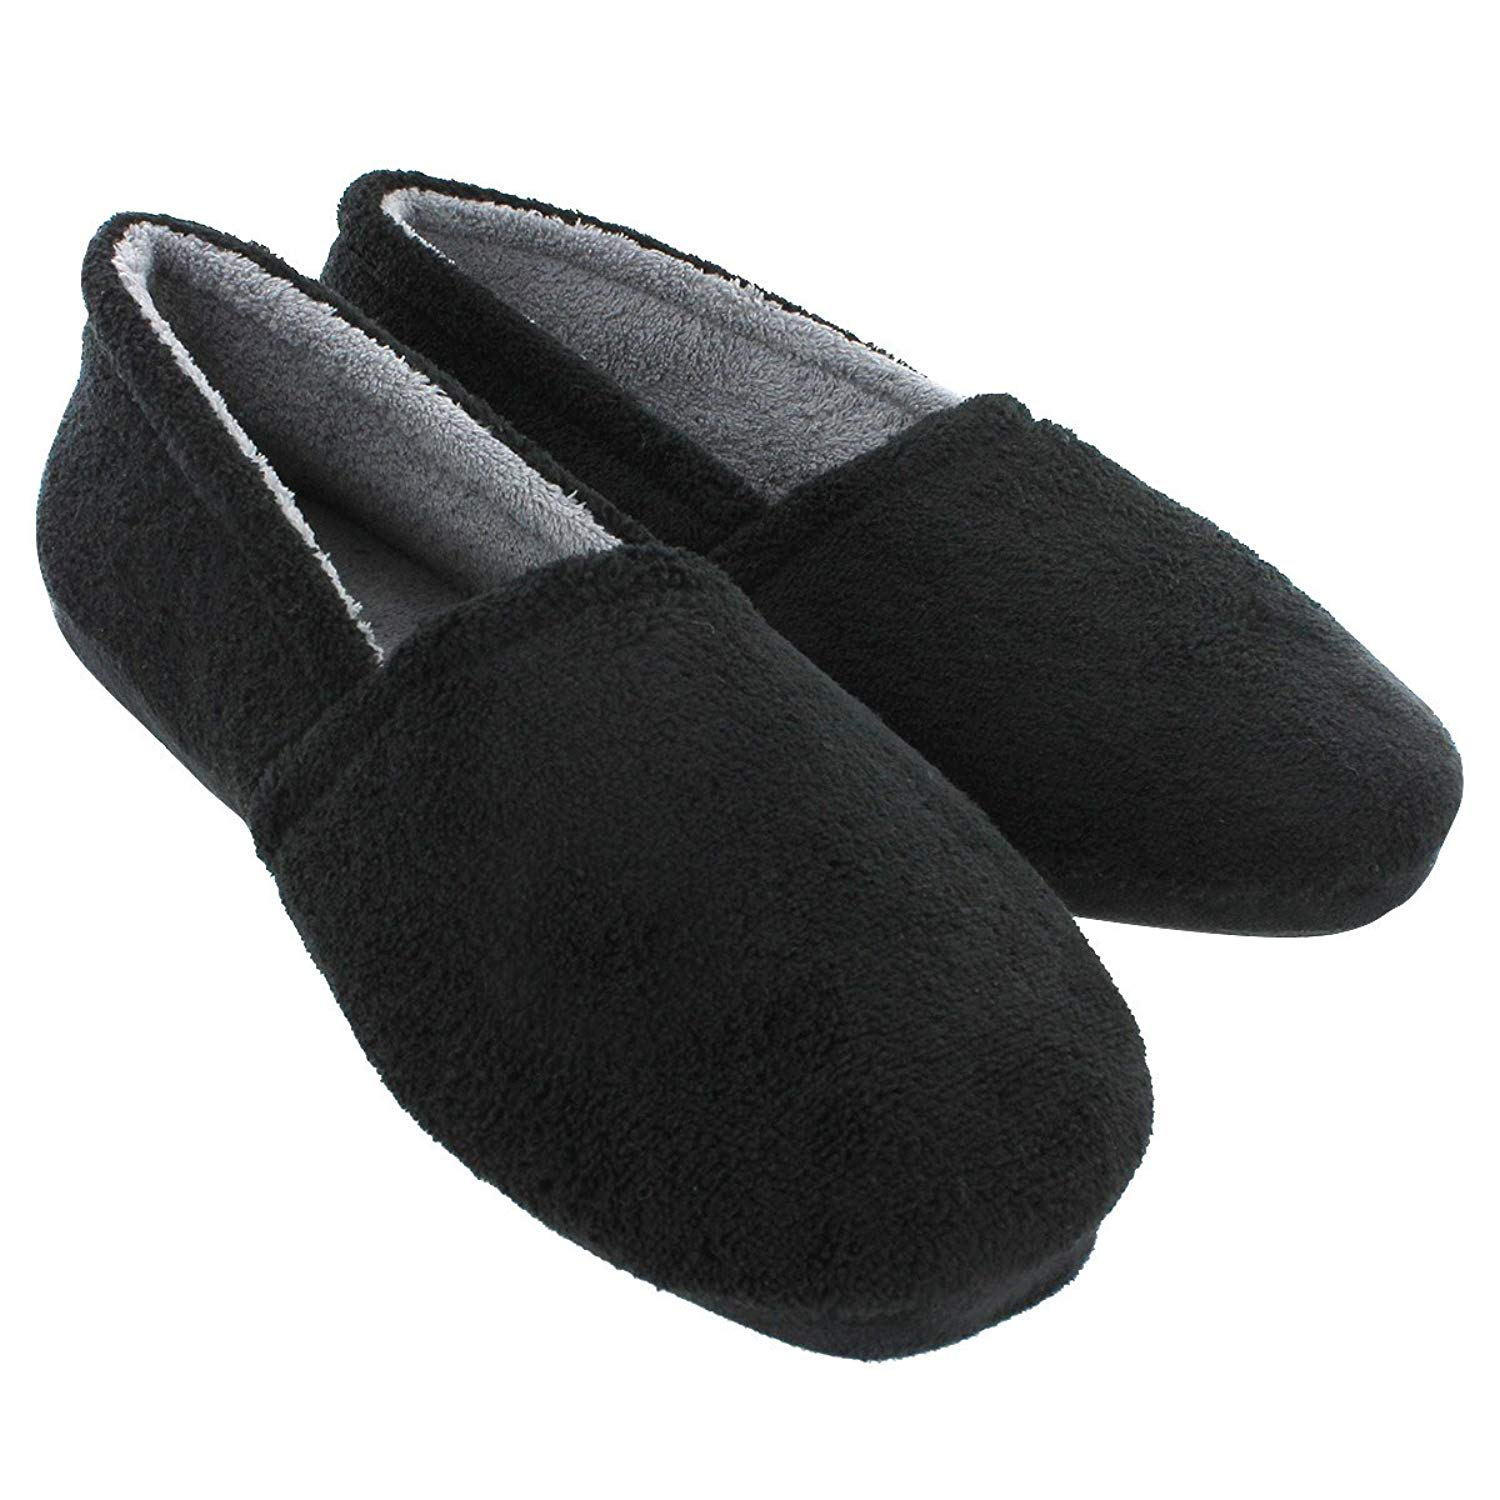 488891060 Cheap Lined Slippers, find Lined Slippers deals on line at Alibaba.com